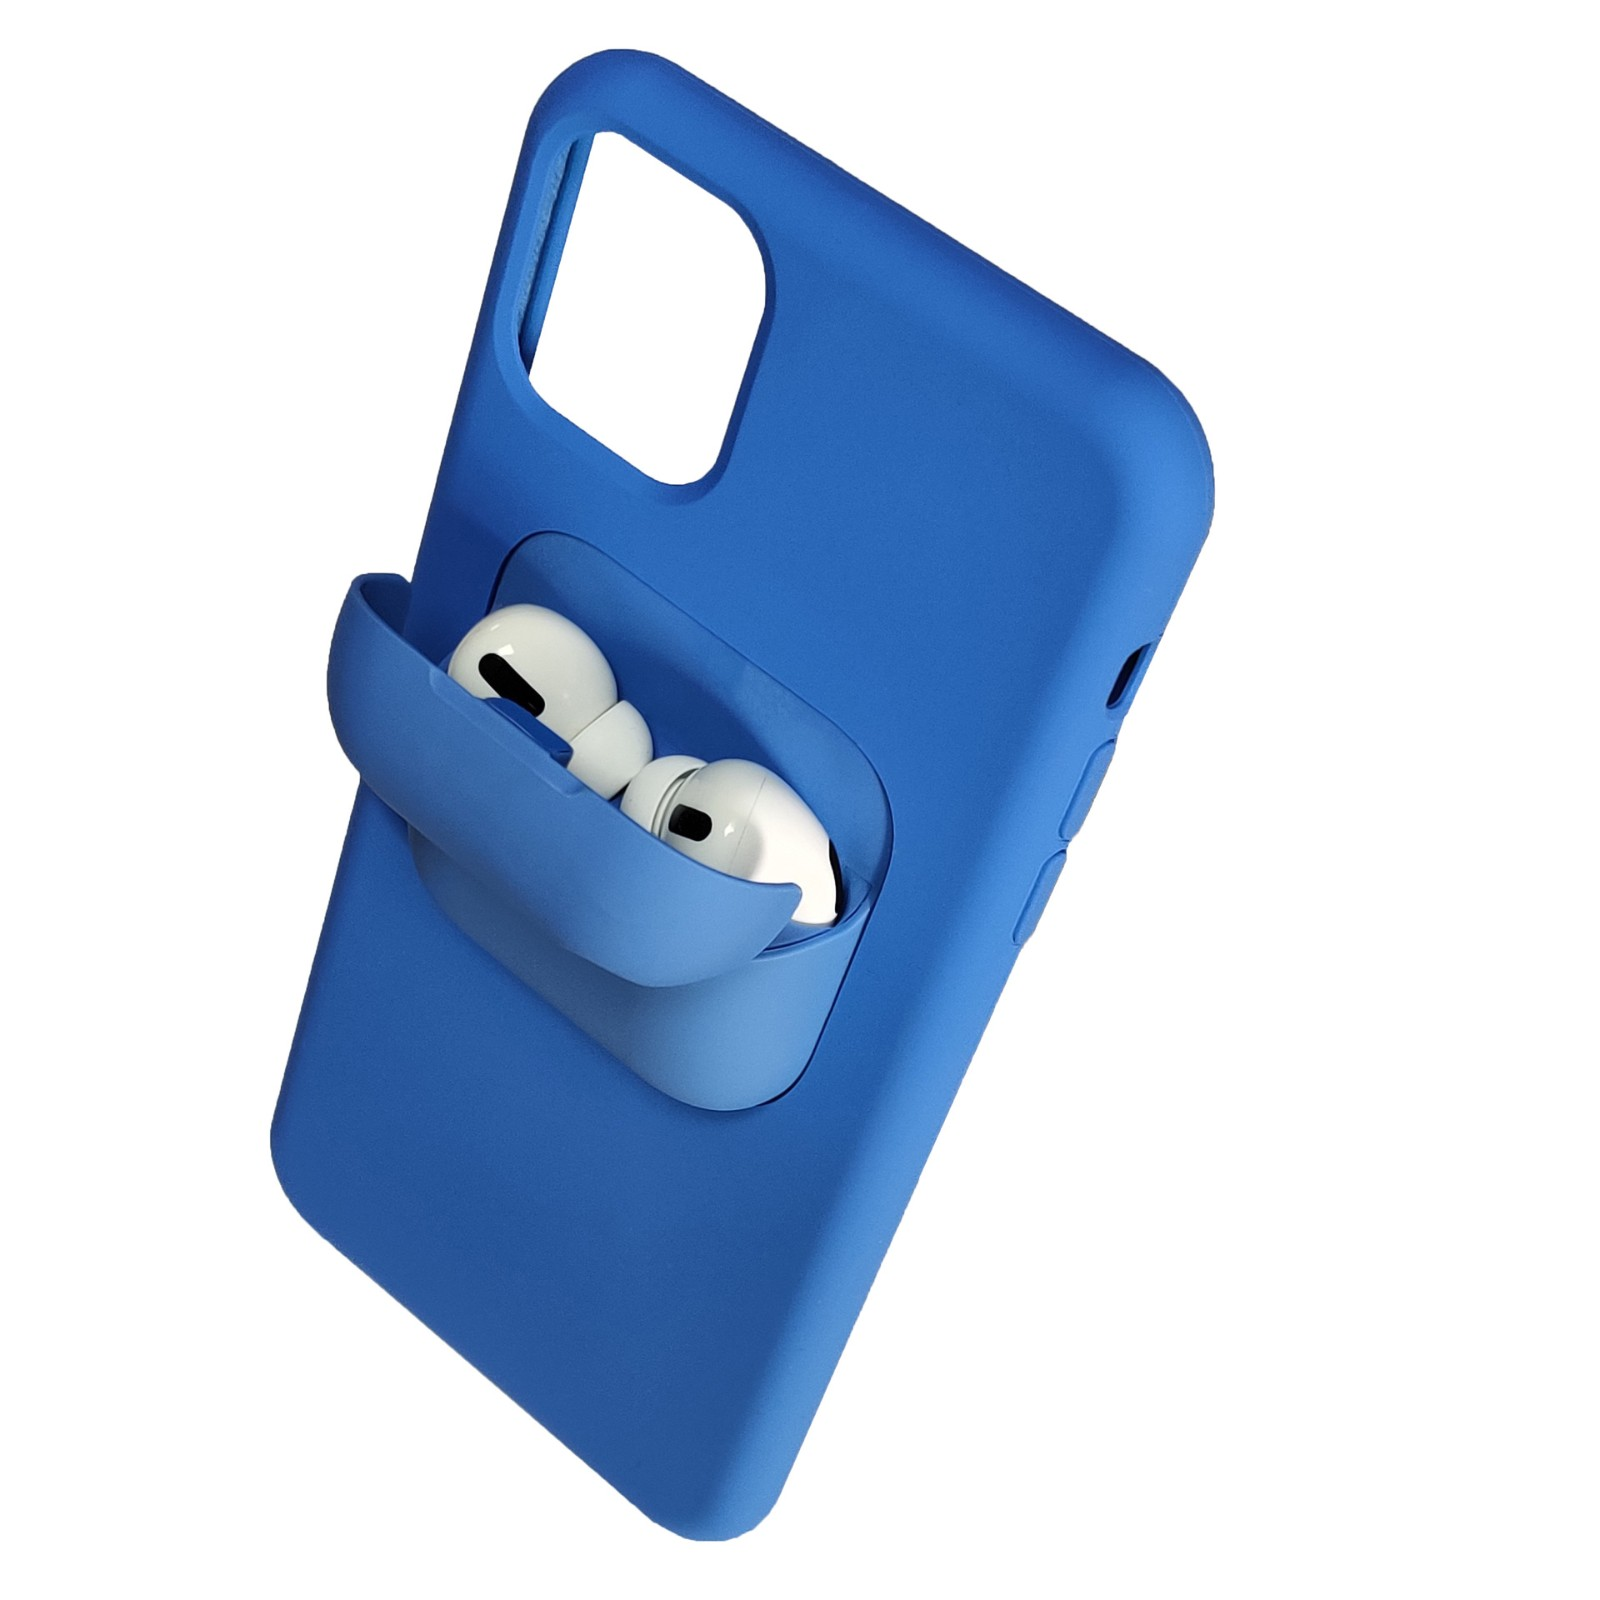 video-TENCHEN iPhone 12 Airpods Case Holder Slim Durable 2 in 1 Cover Designed for iPhone Protects